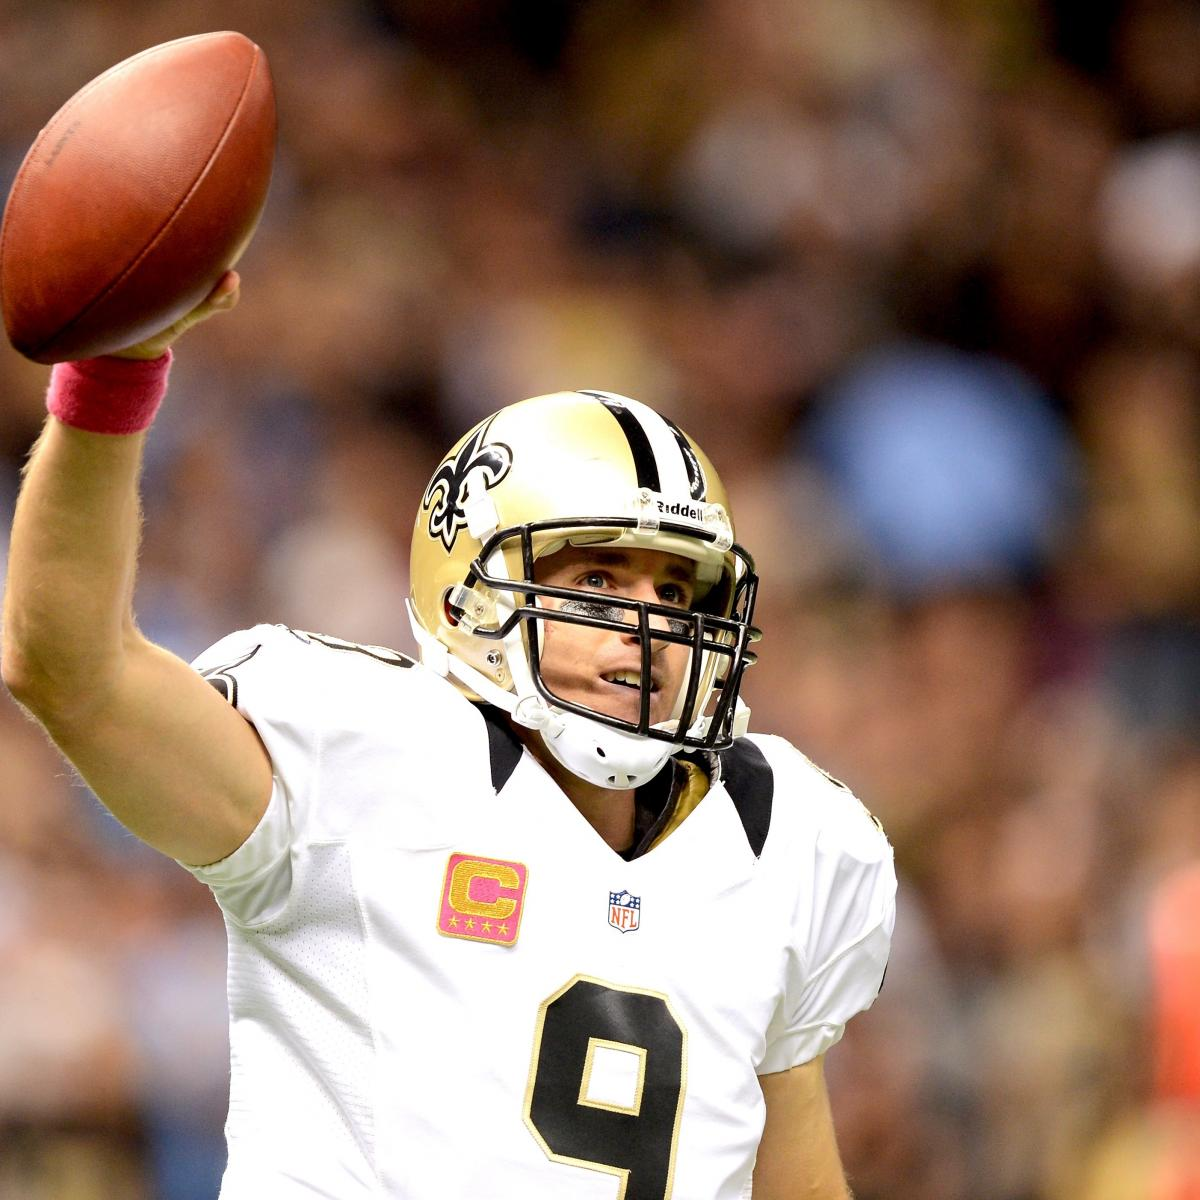 San Diego Chargers Drew Brees: Chargers Vs. Saints: Drew Brees' Historic Day Leads New